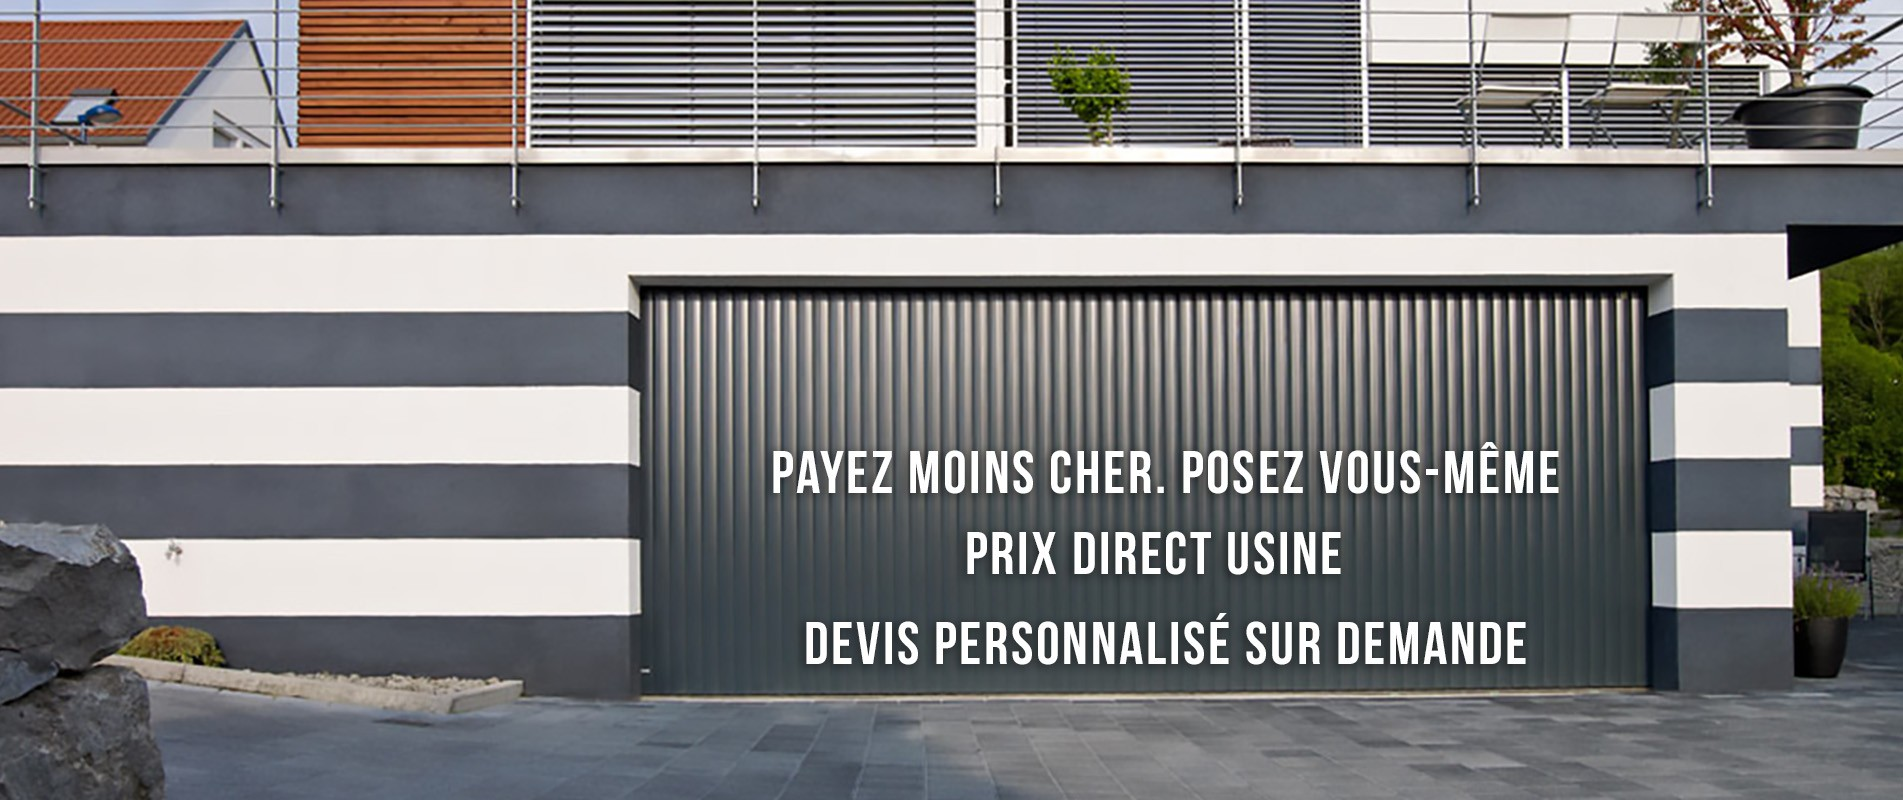 Porte de garage prix direct usine